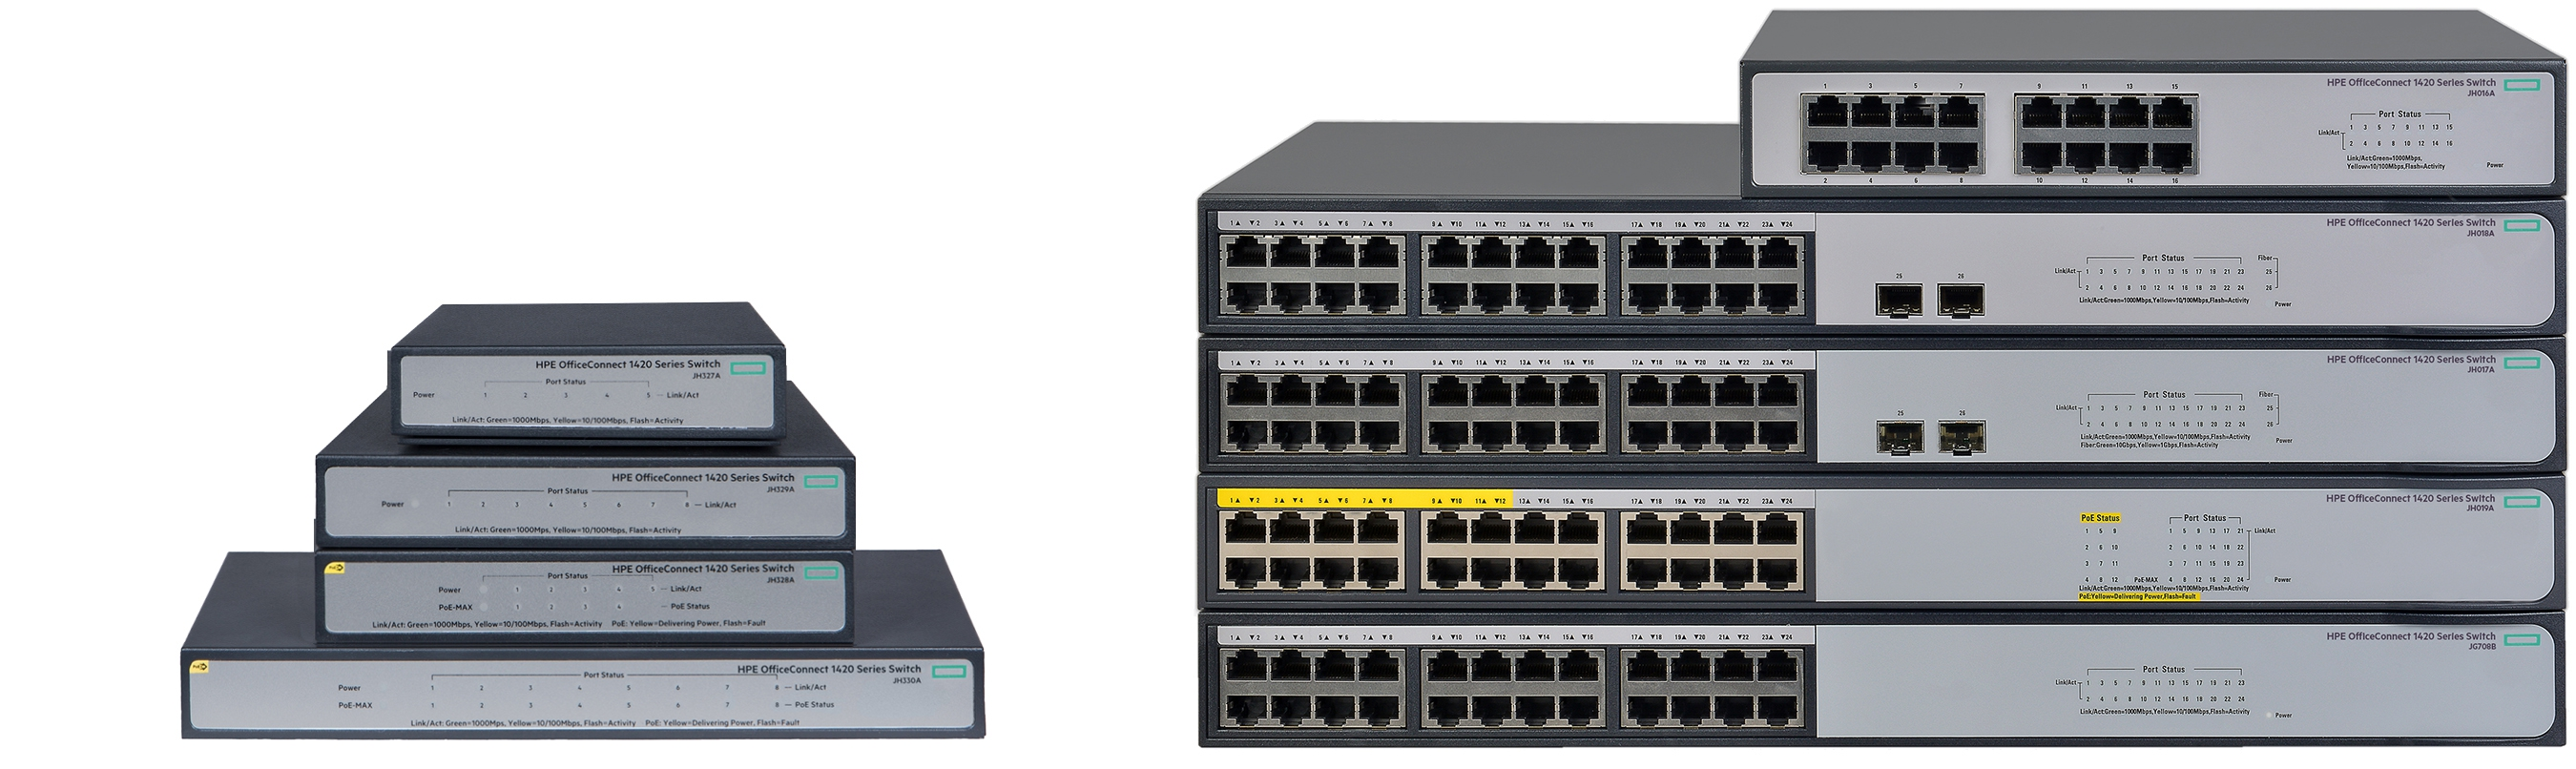 HPE OC 1420 switch family 06 06